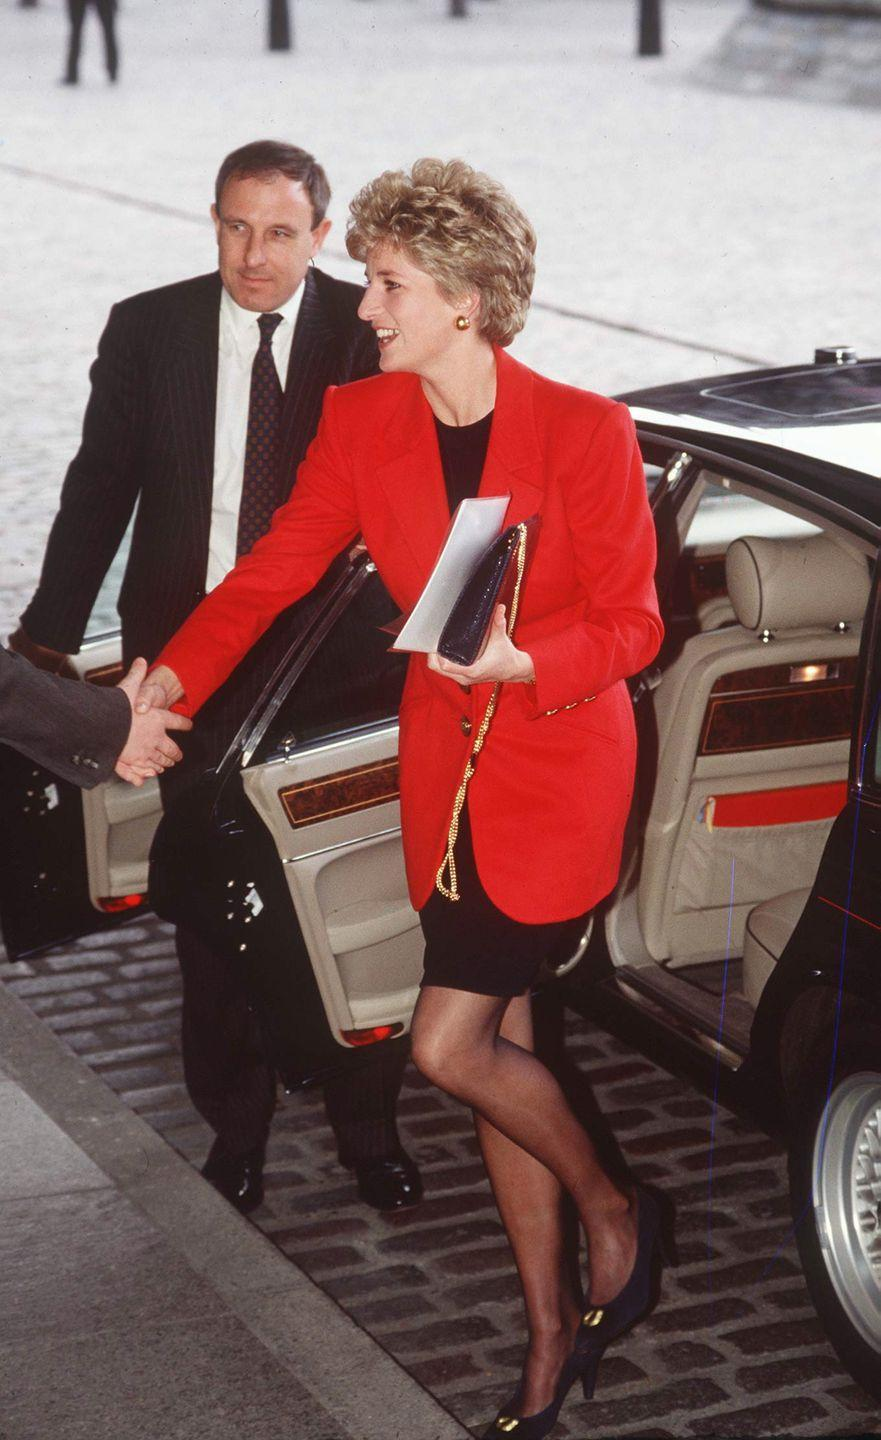 <p>LBD, meet the classic red blazer. Diana wowed in this head-turning outfit combination in March 1993.<br></p>